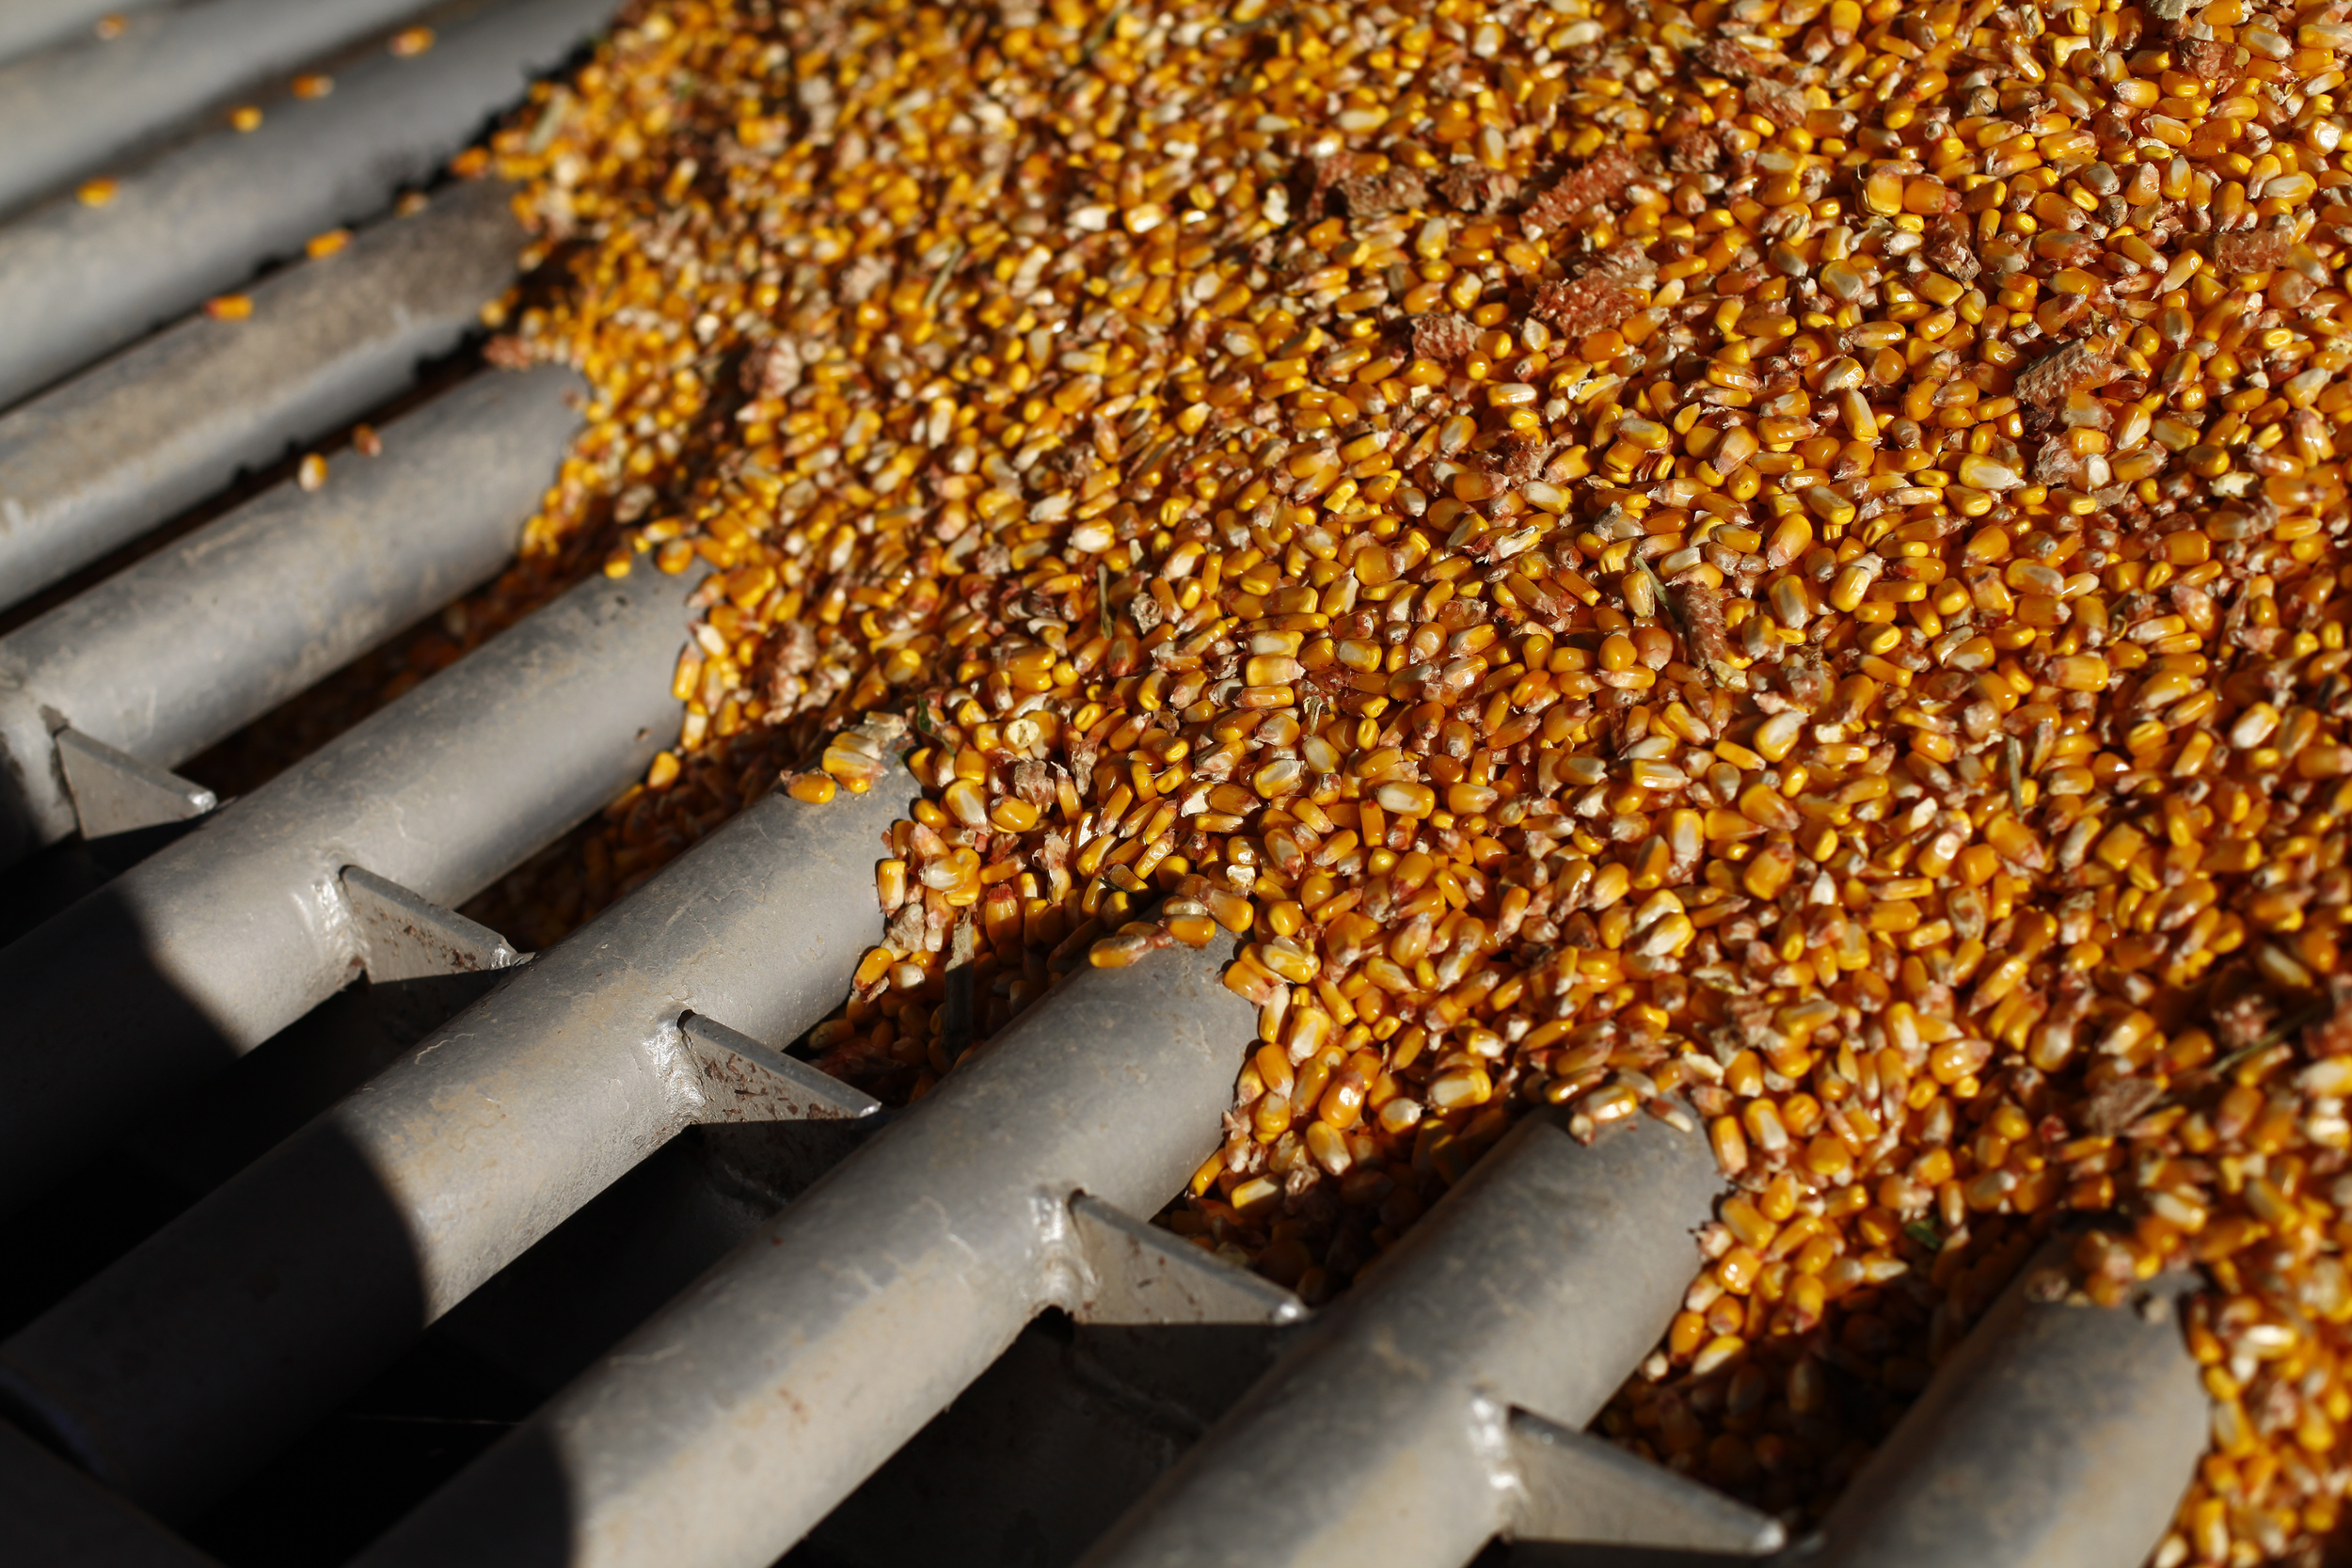 Shelled corn is deposited into a grain drying system.